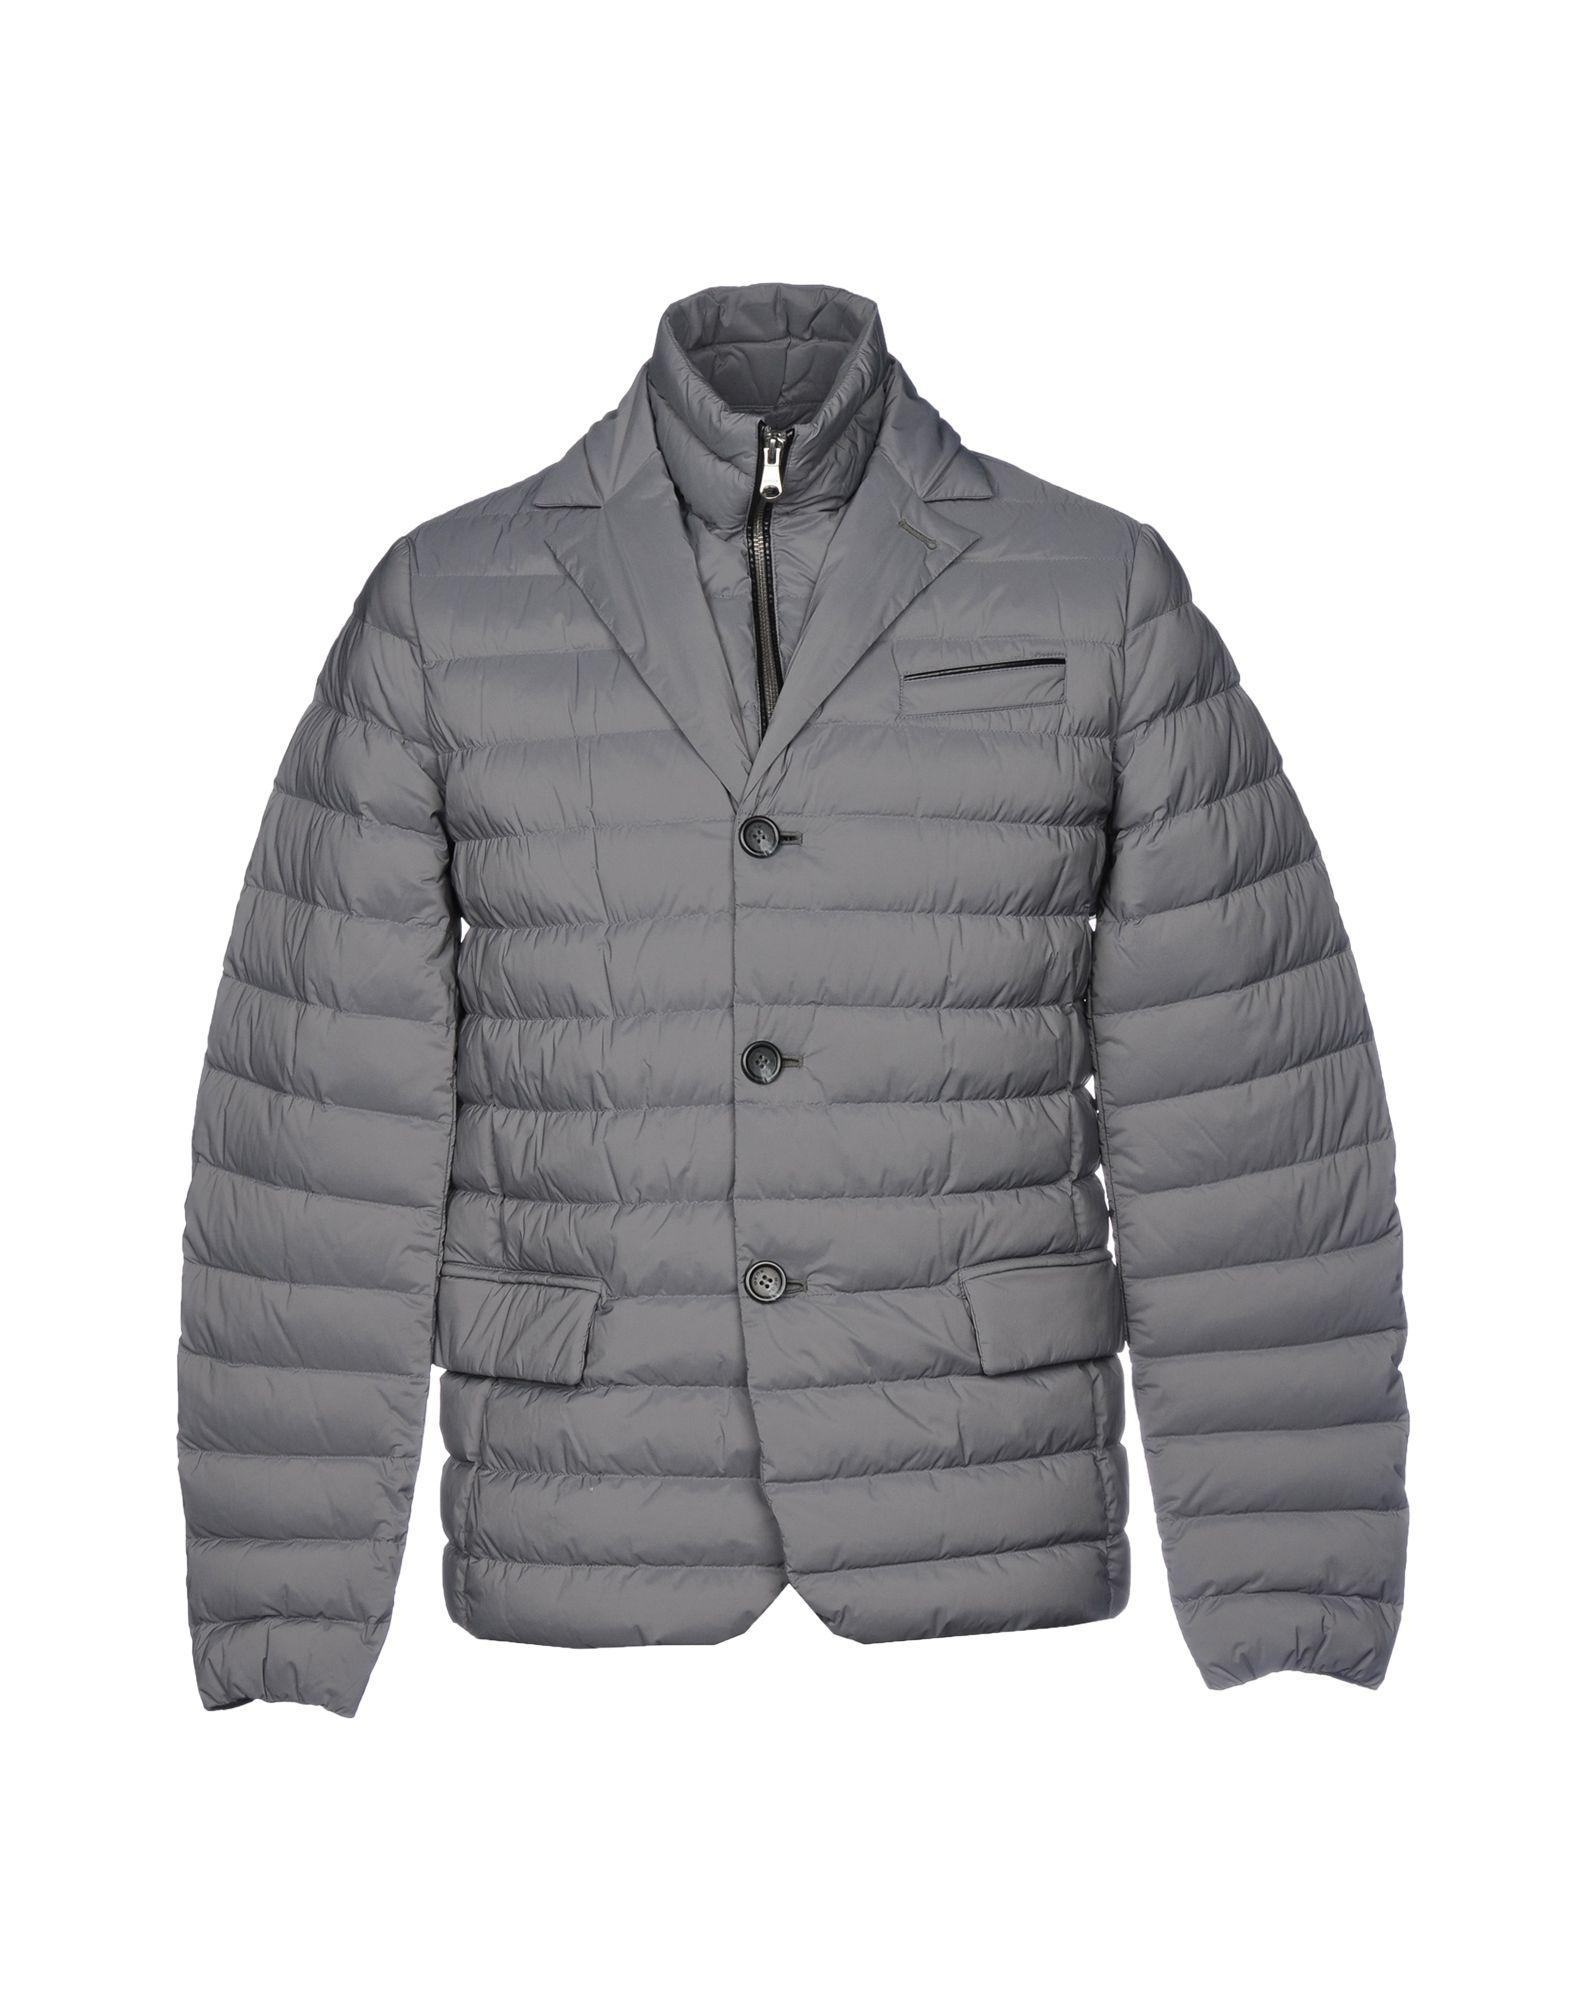 118e206ff5 Geox Down Jacket in Gray for Men - Lyst